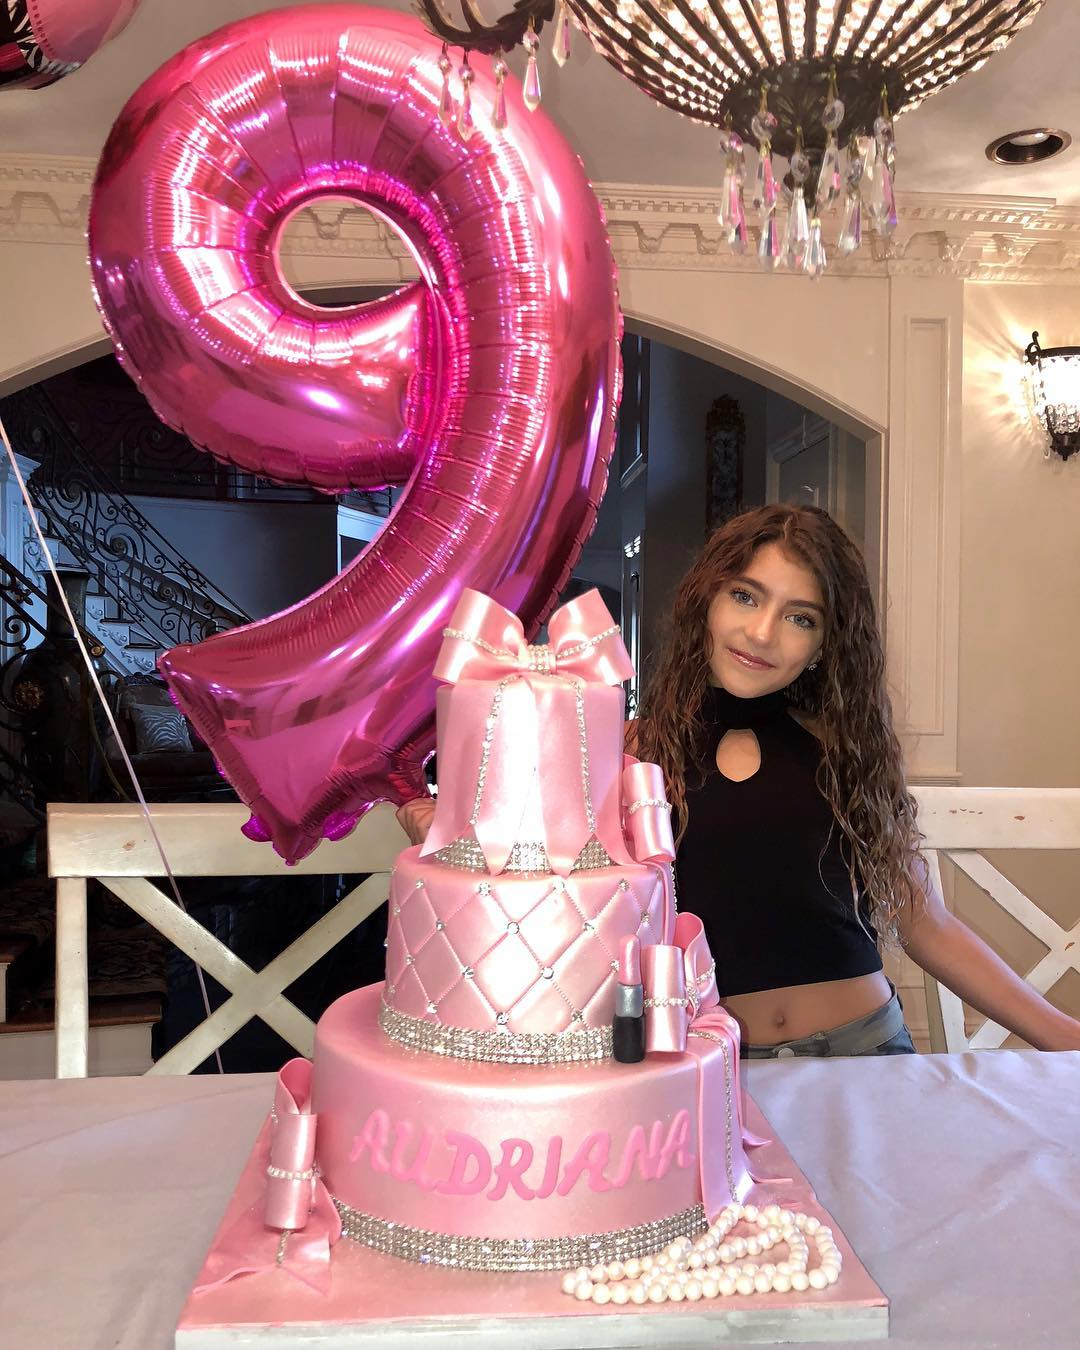 Stupendous Audriana Giudice And Birthday Cake The Hollywood Gossip Funny Birthday Cards Online Overcheapnameinfo